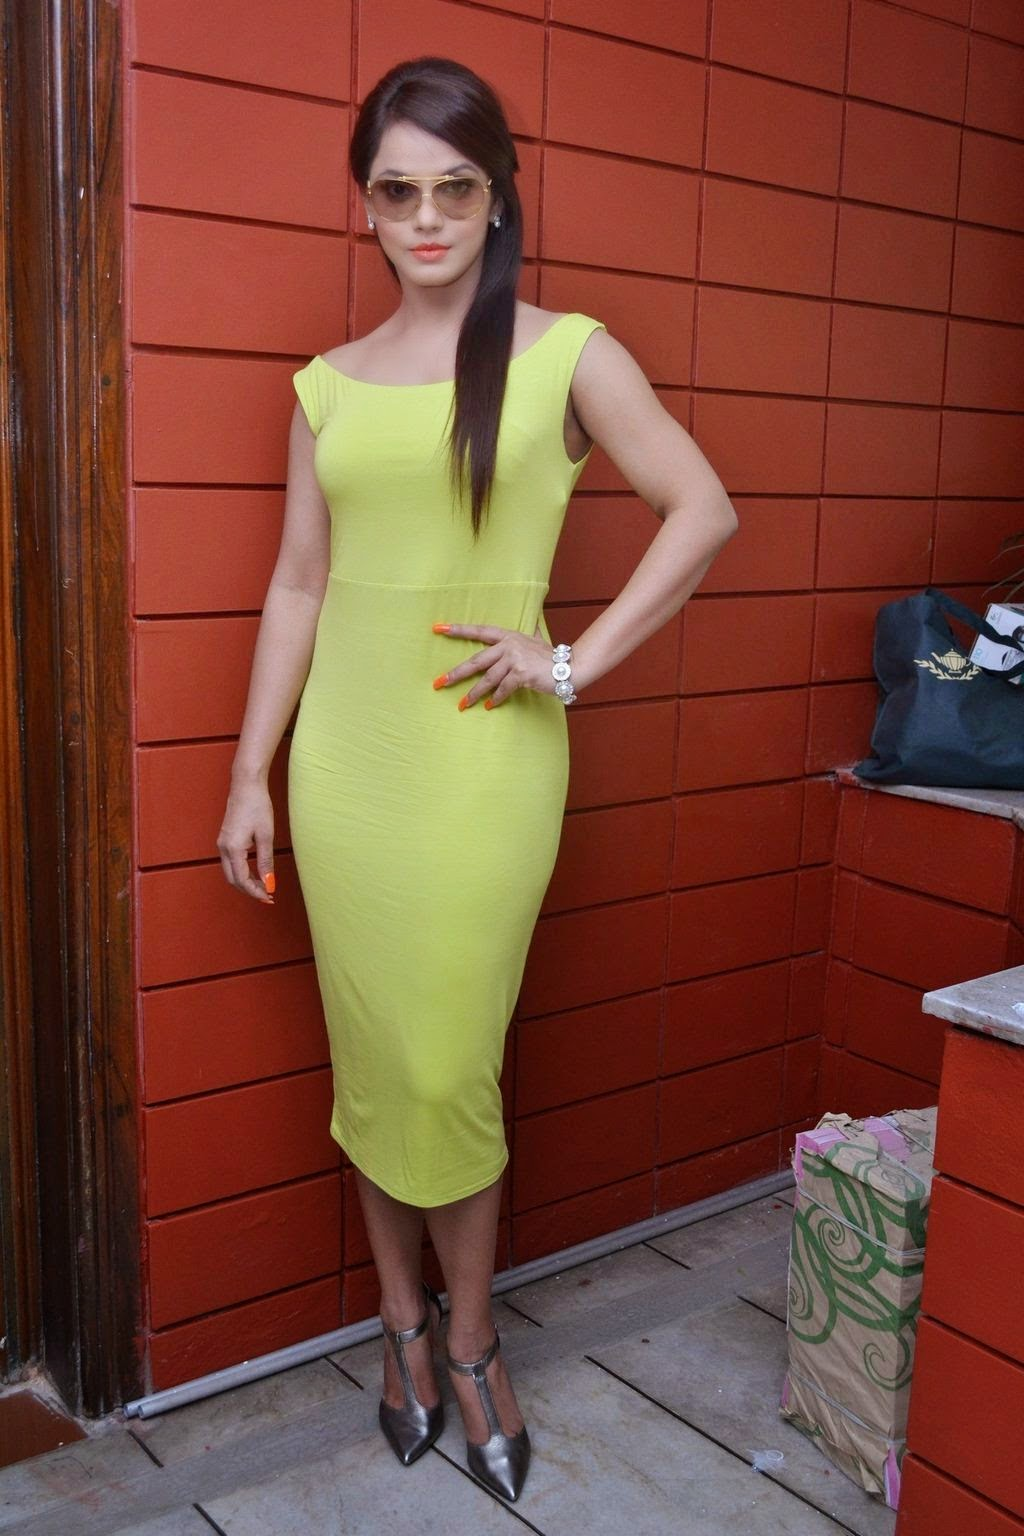 2015 : Neetu Chandra Hot Pics : Neetu Chandra Looks Very Hot & Sexy In Her Green Gown at Press Meet .